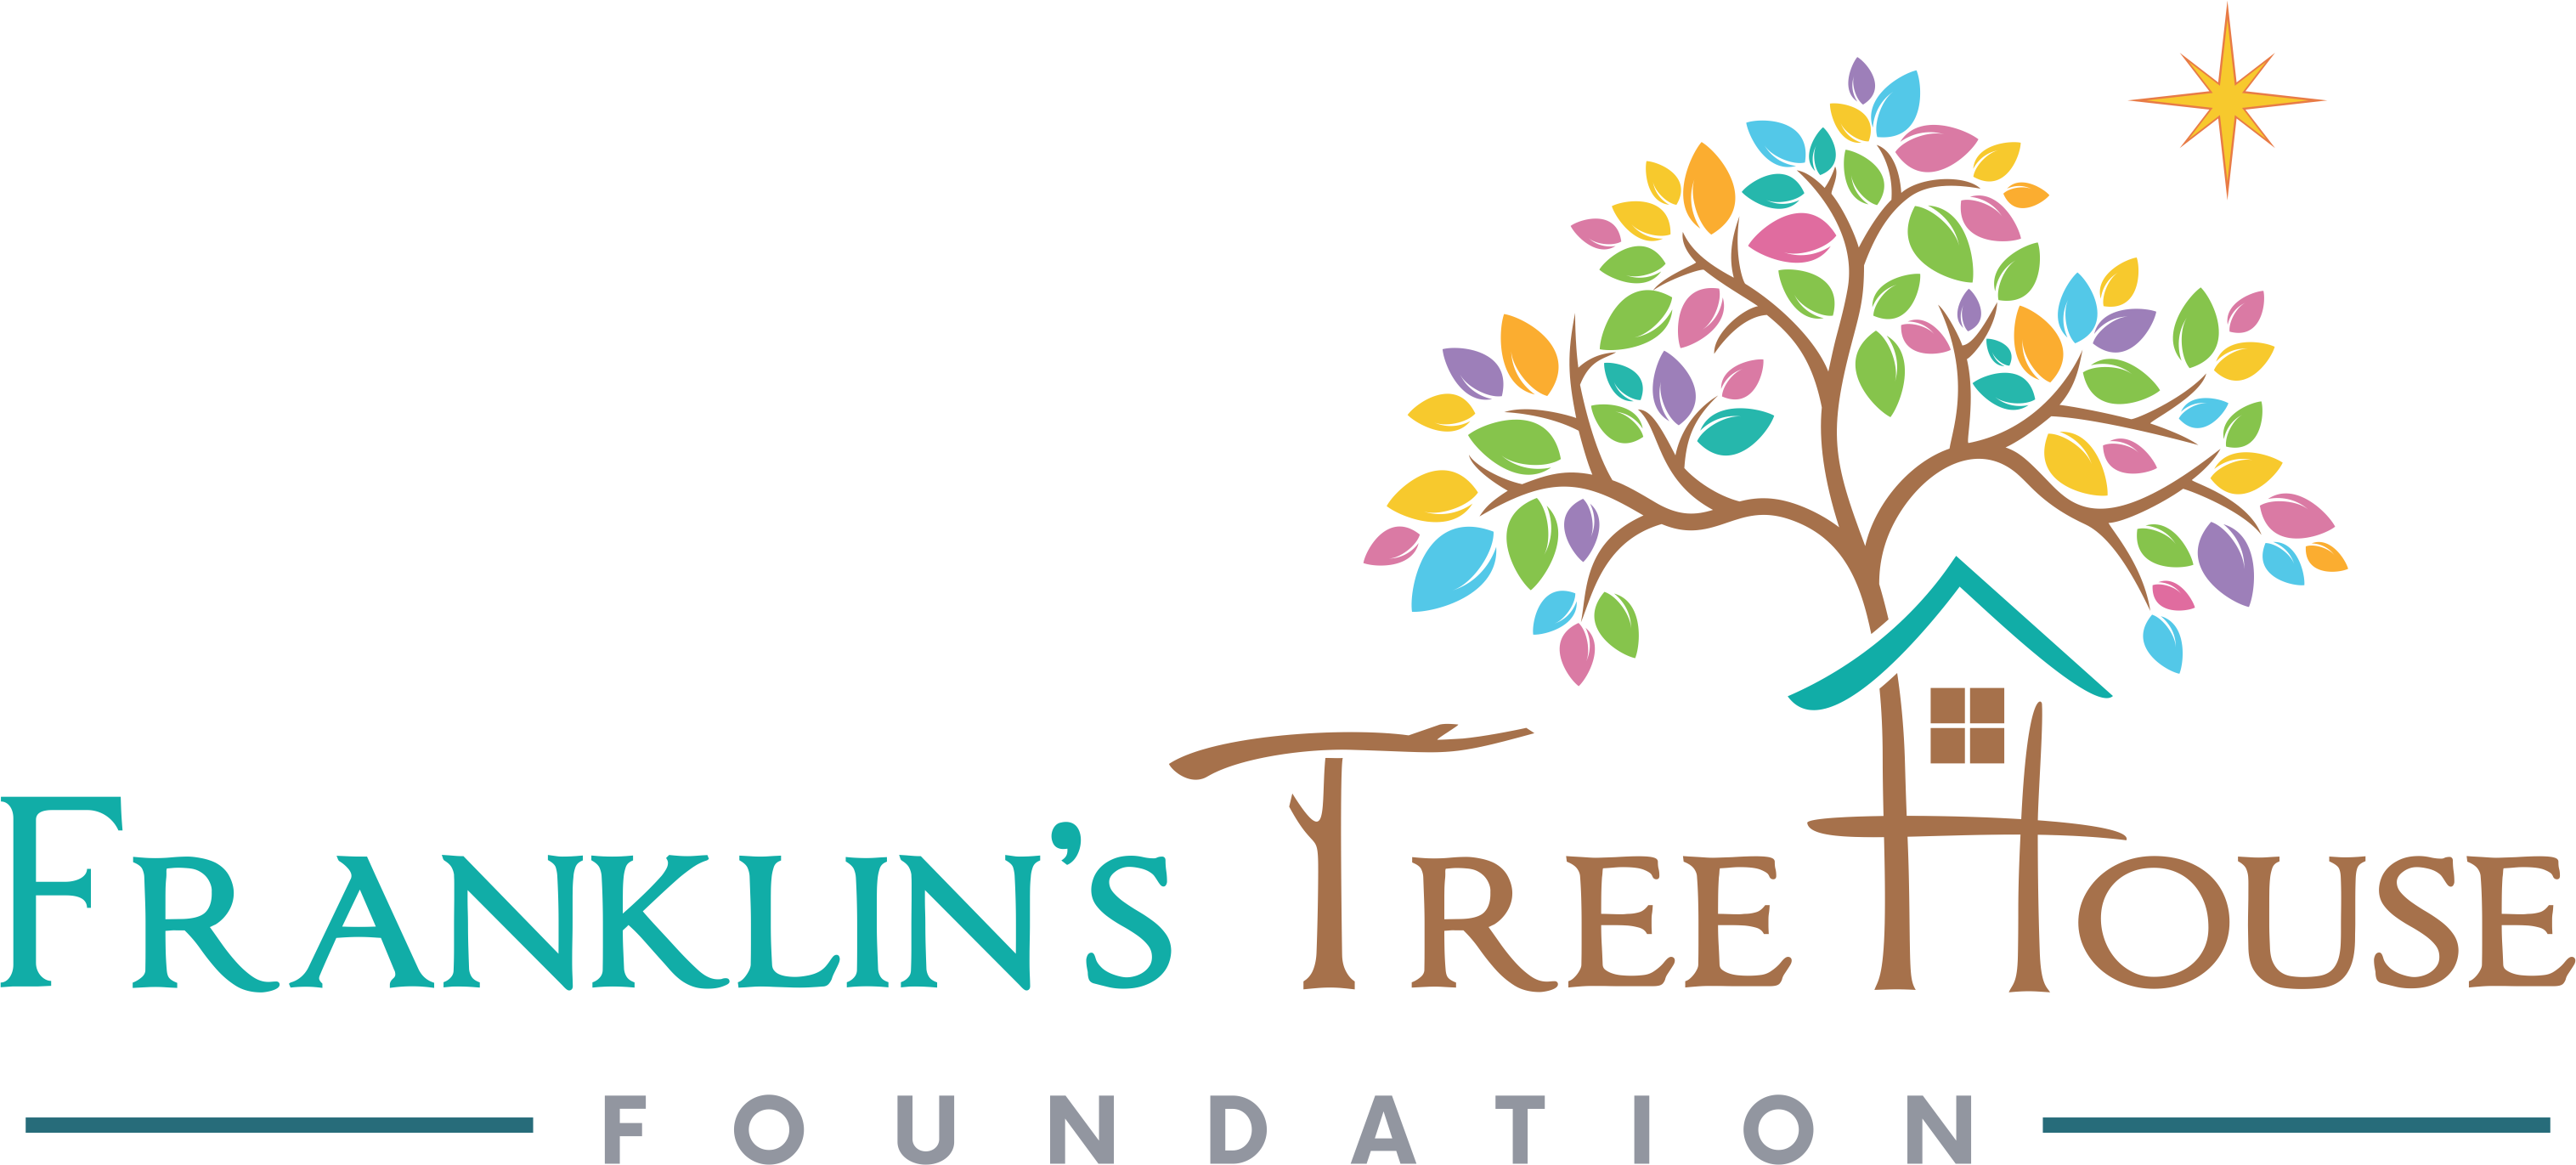 Franklin's Tree House Foundation, Inc.